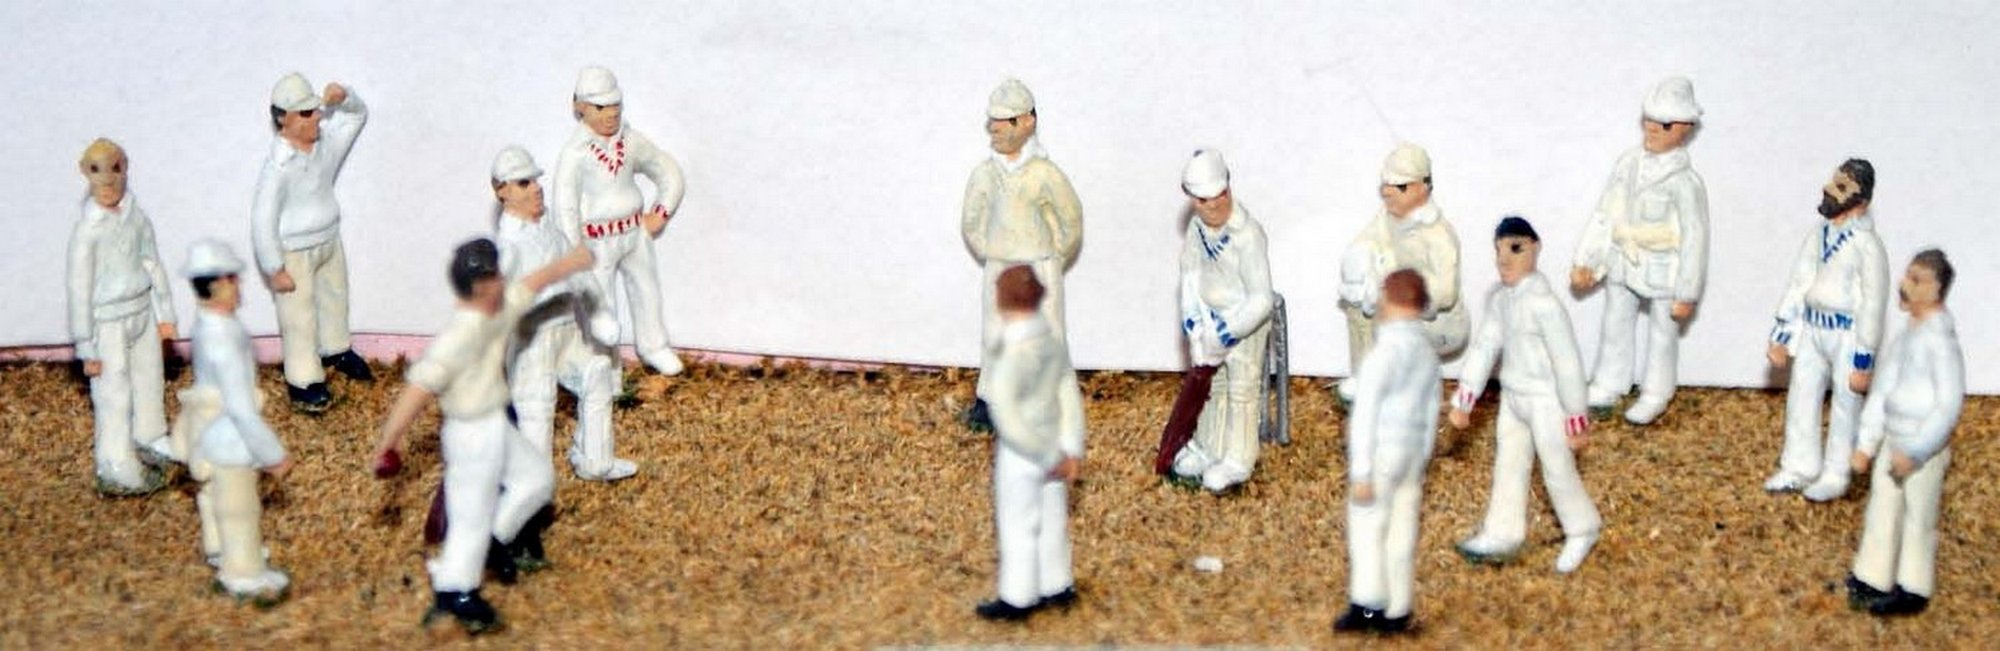 Langley Models Cricket Game 15 Figures stumps bats OO Scale Model PAINTED F35p